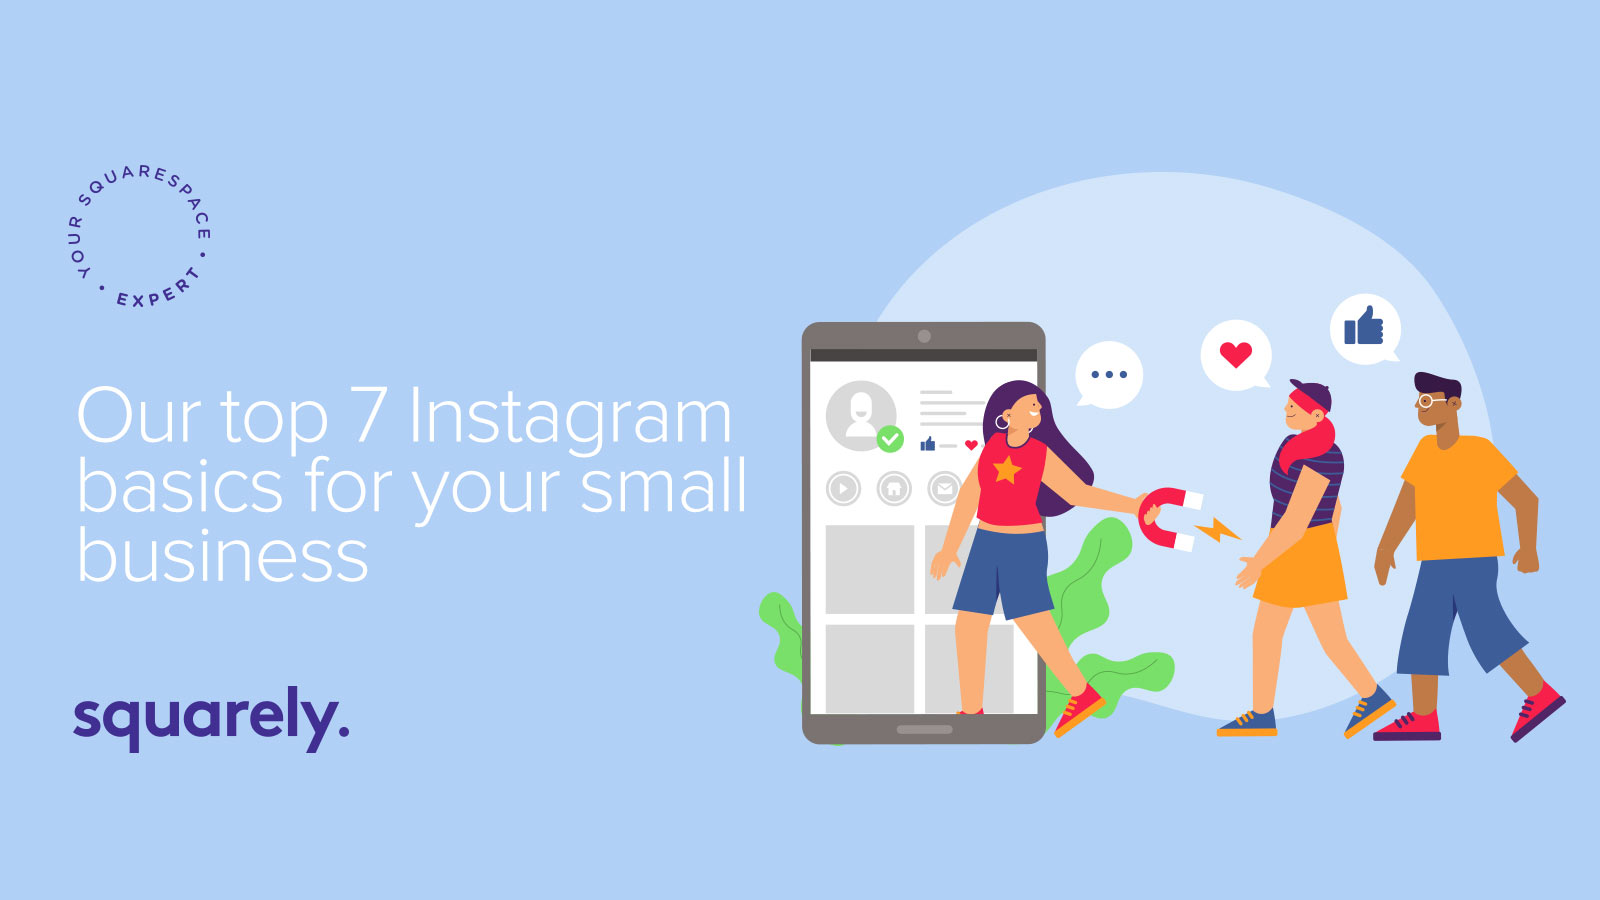 Read our article on top tips for Instagram for your small business.